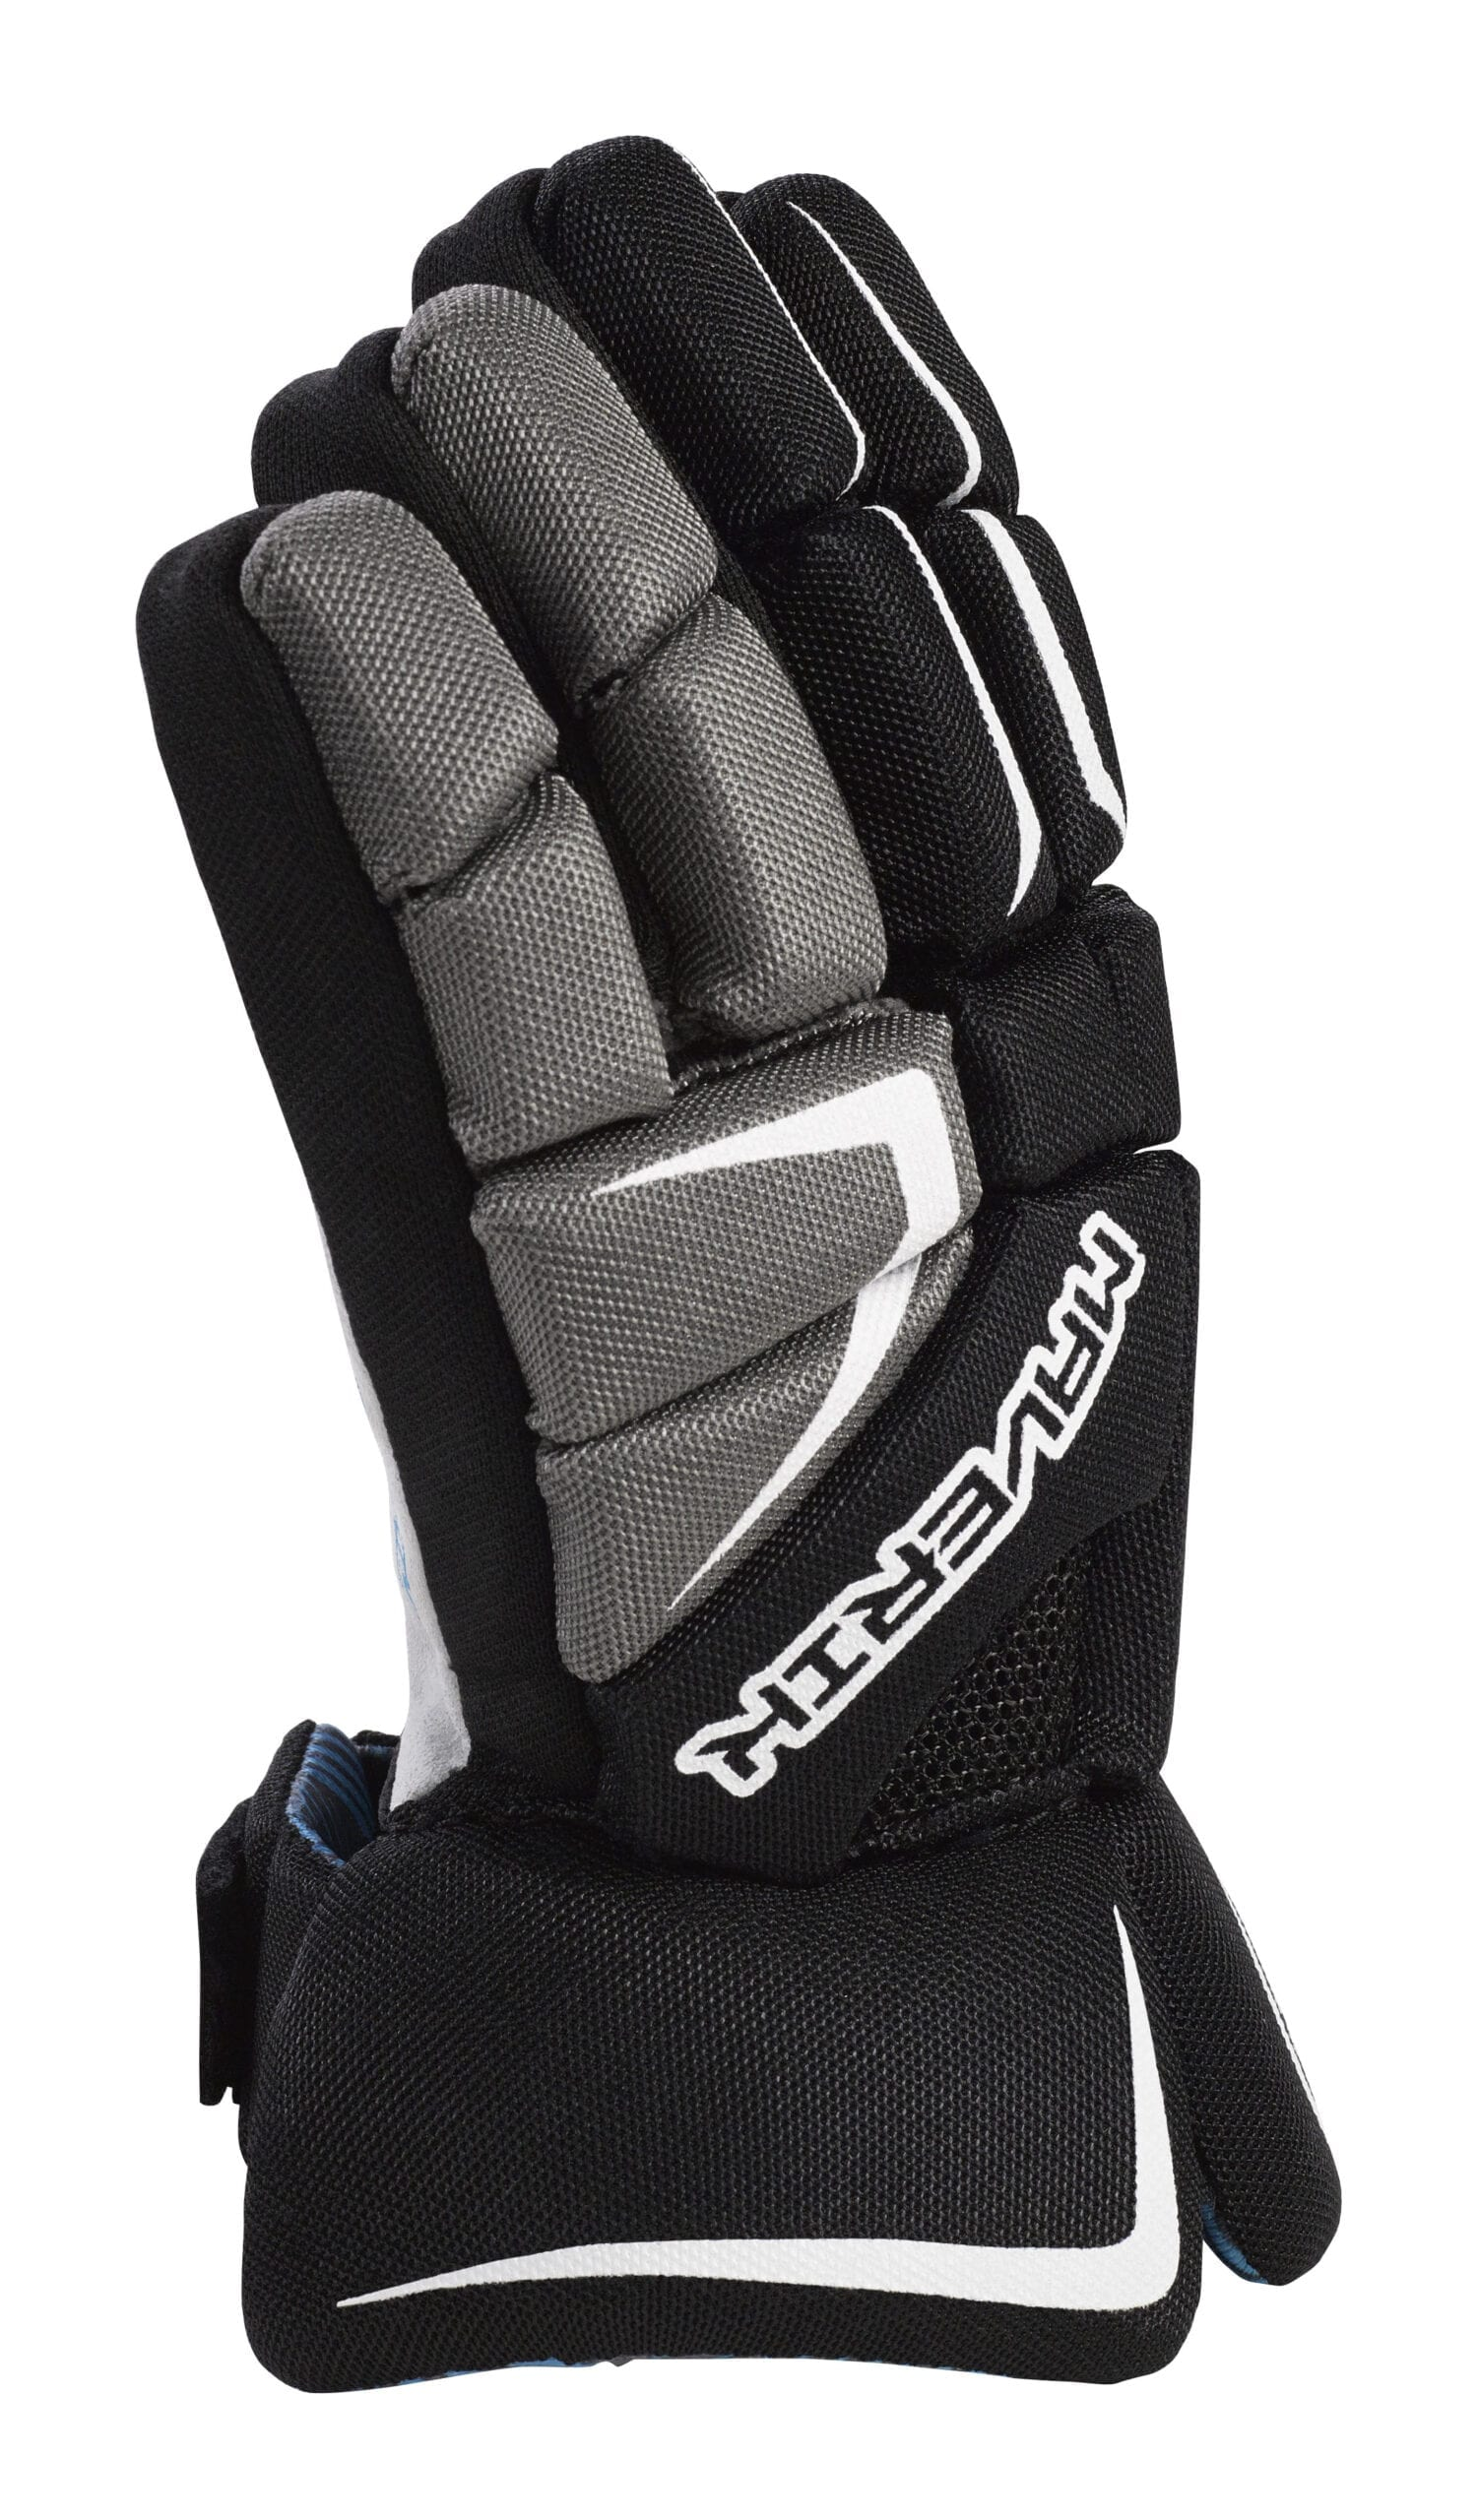 CHARGER-GLOVE_PROTECTIVE__BLACK_Side-scaled-1.jpg